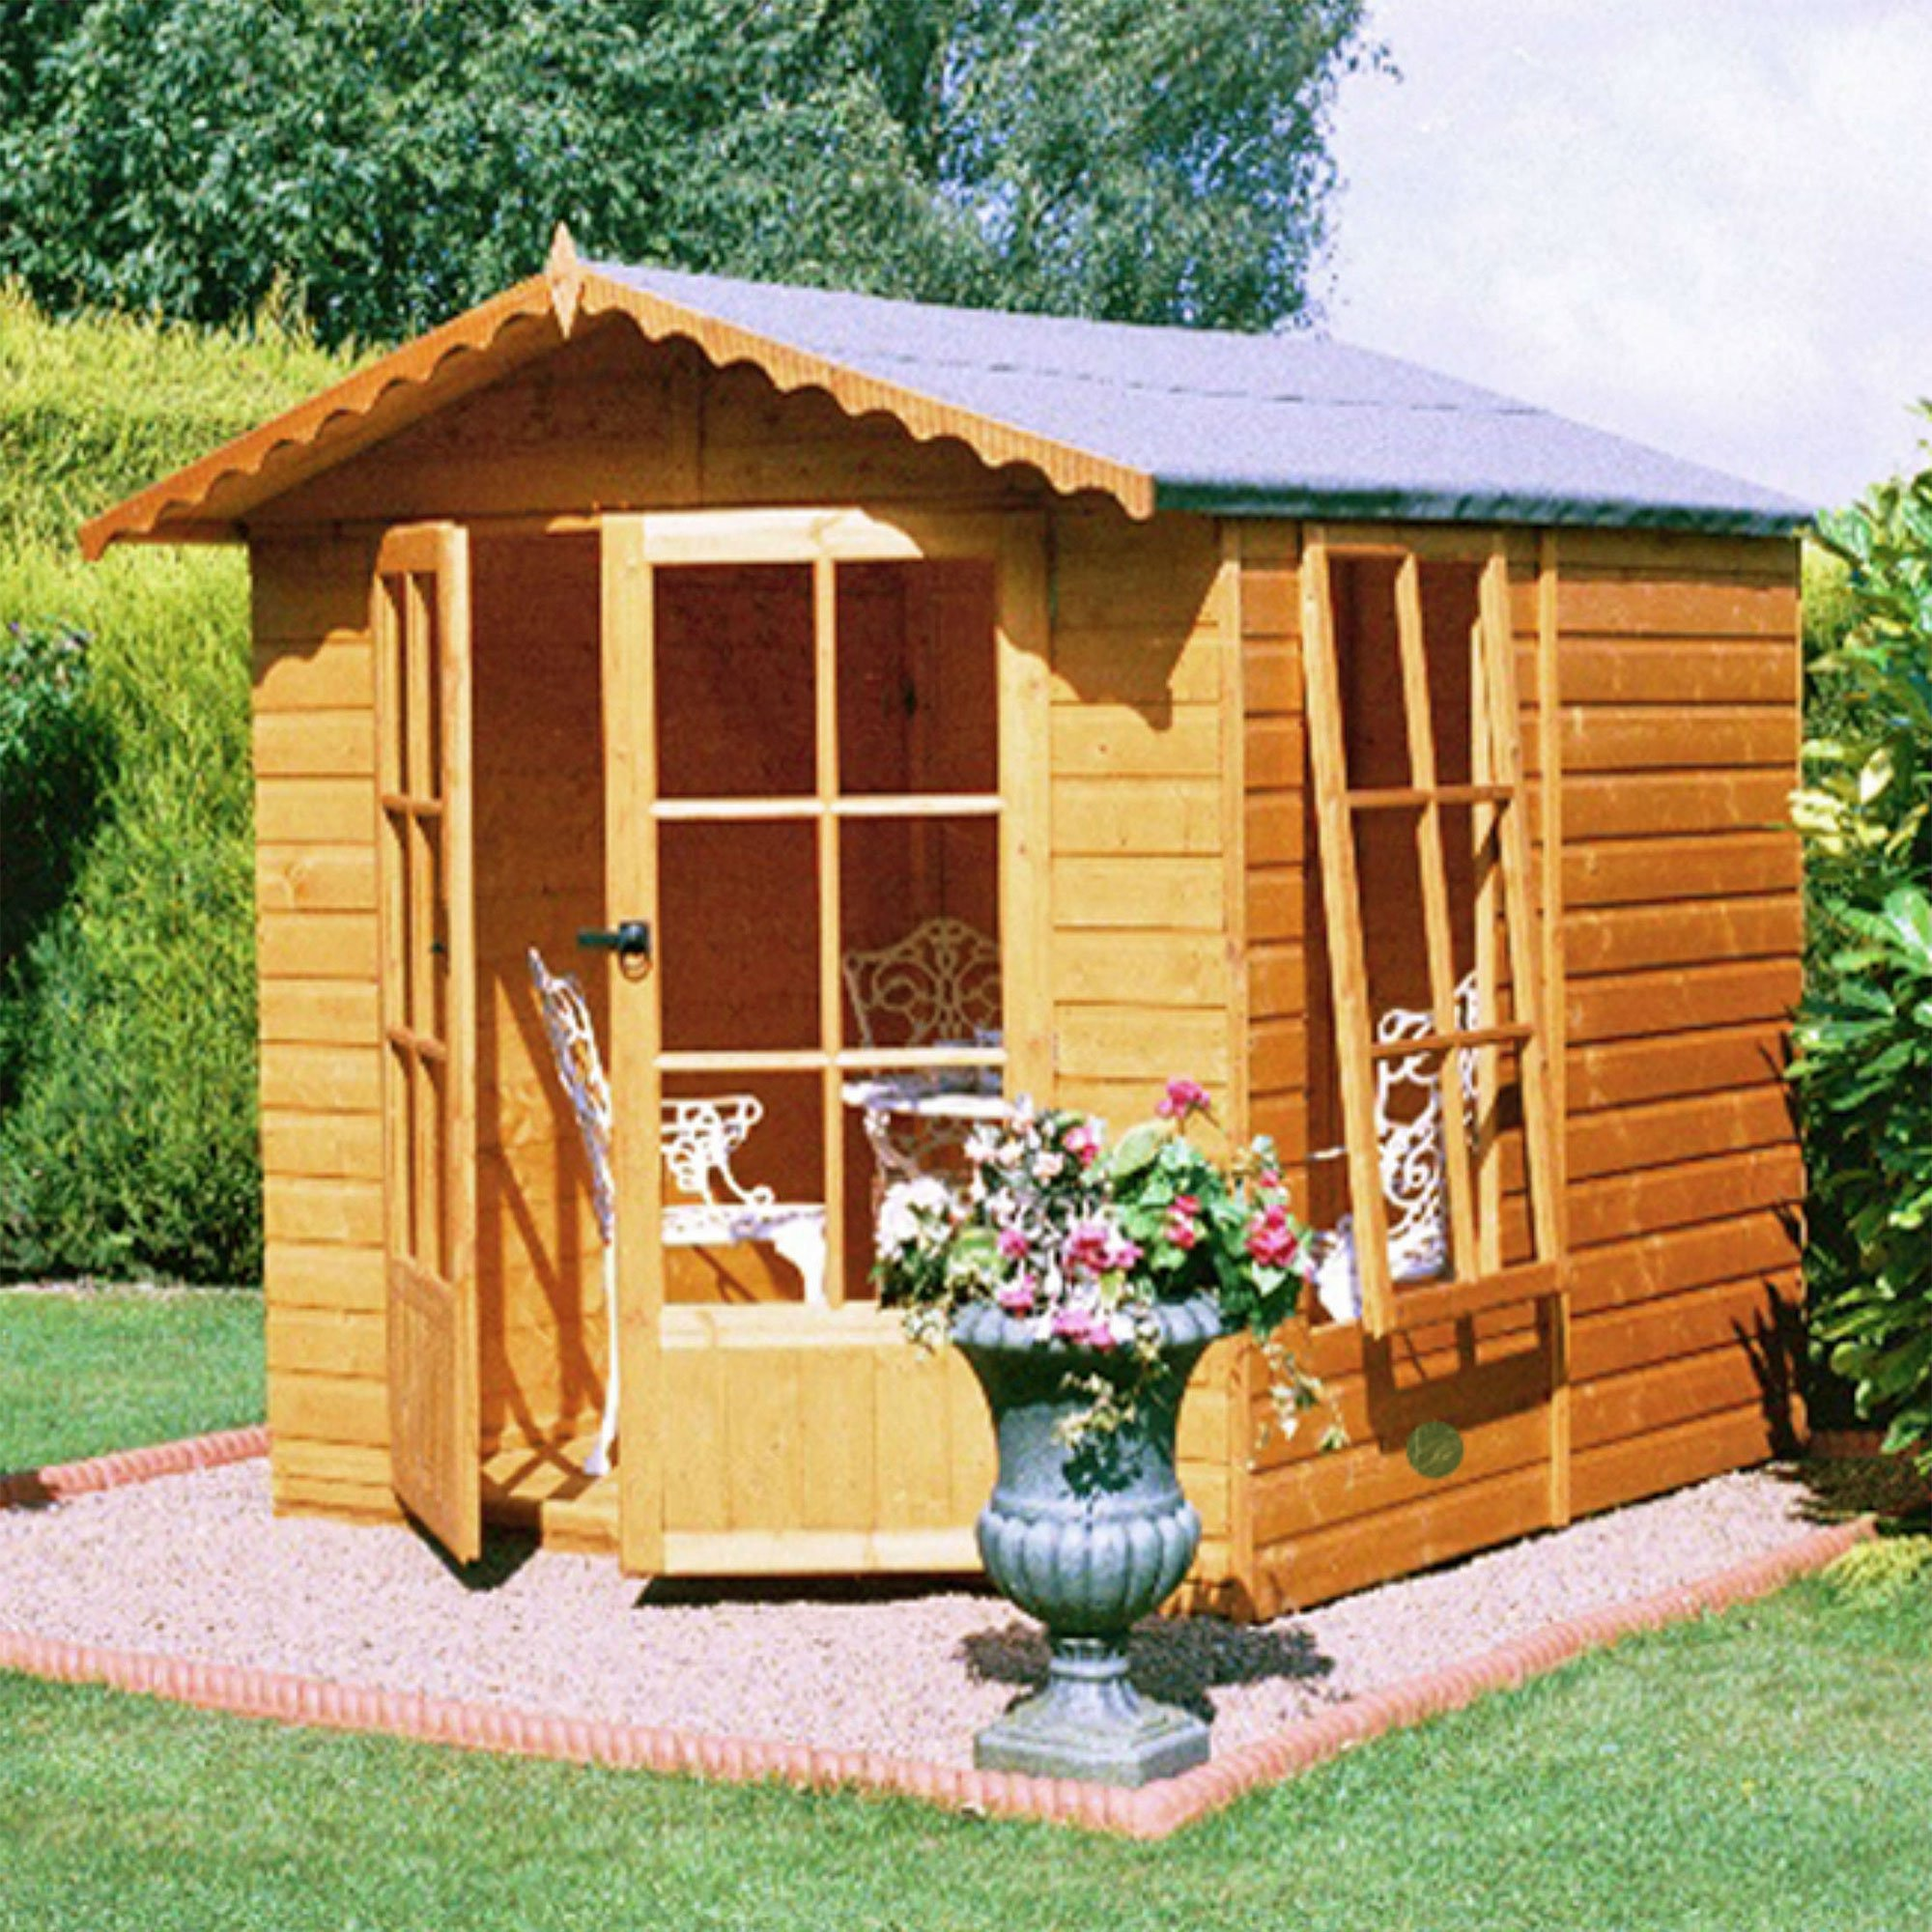 6'6x6'9 Shire Buckingham Traditional Wooden Summer House